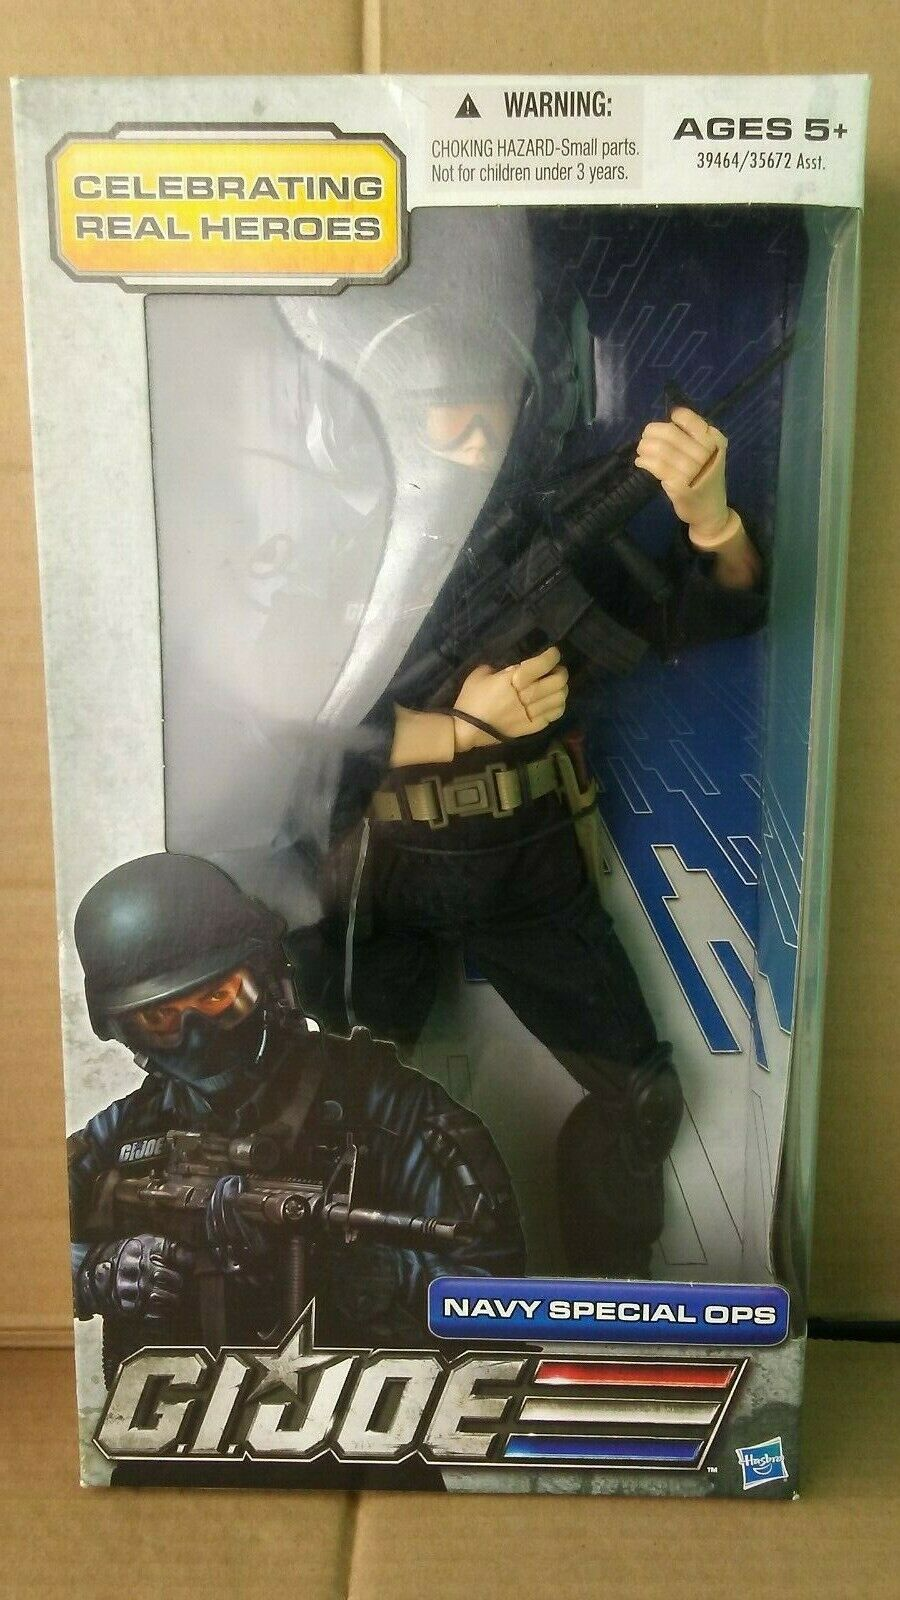 HASBRO G.I. JOE  NAVY SPECIAL OPS 12  TALL HIGHLY DETAILED ACTION FIGURE